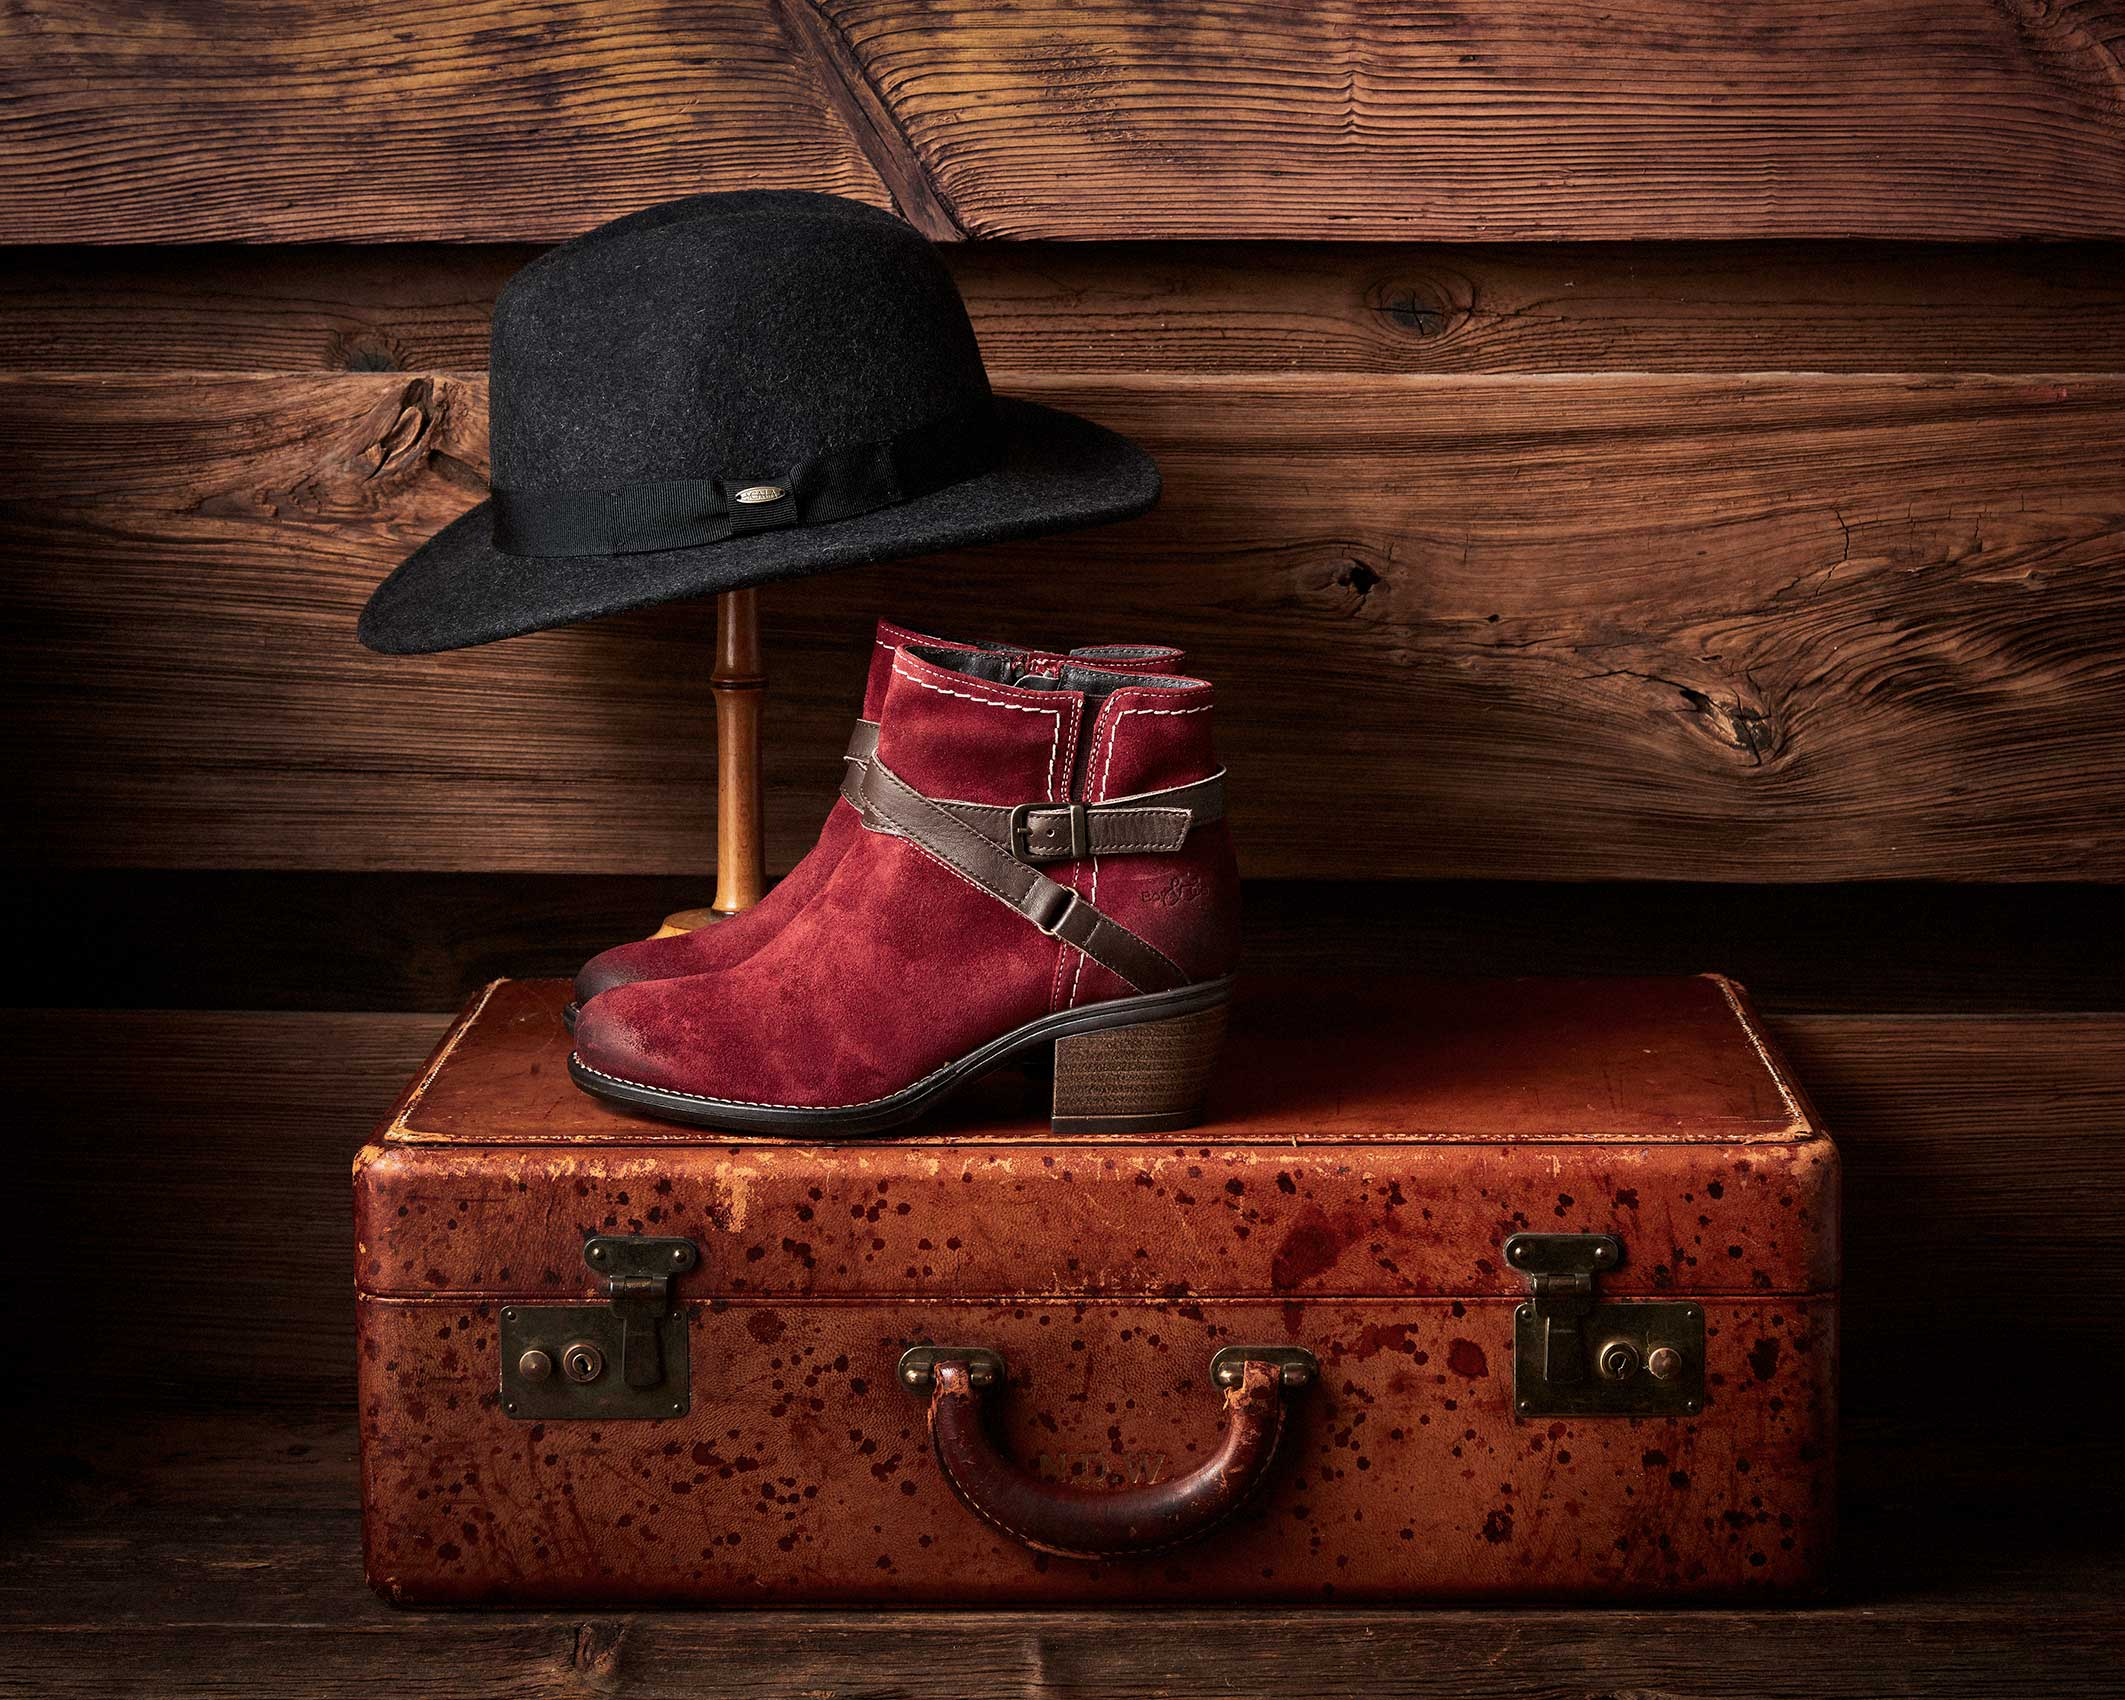 Still life fashion photo showing hat and red boots.